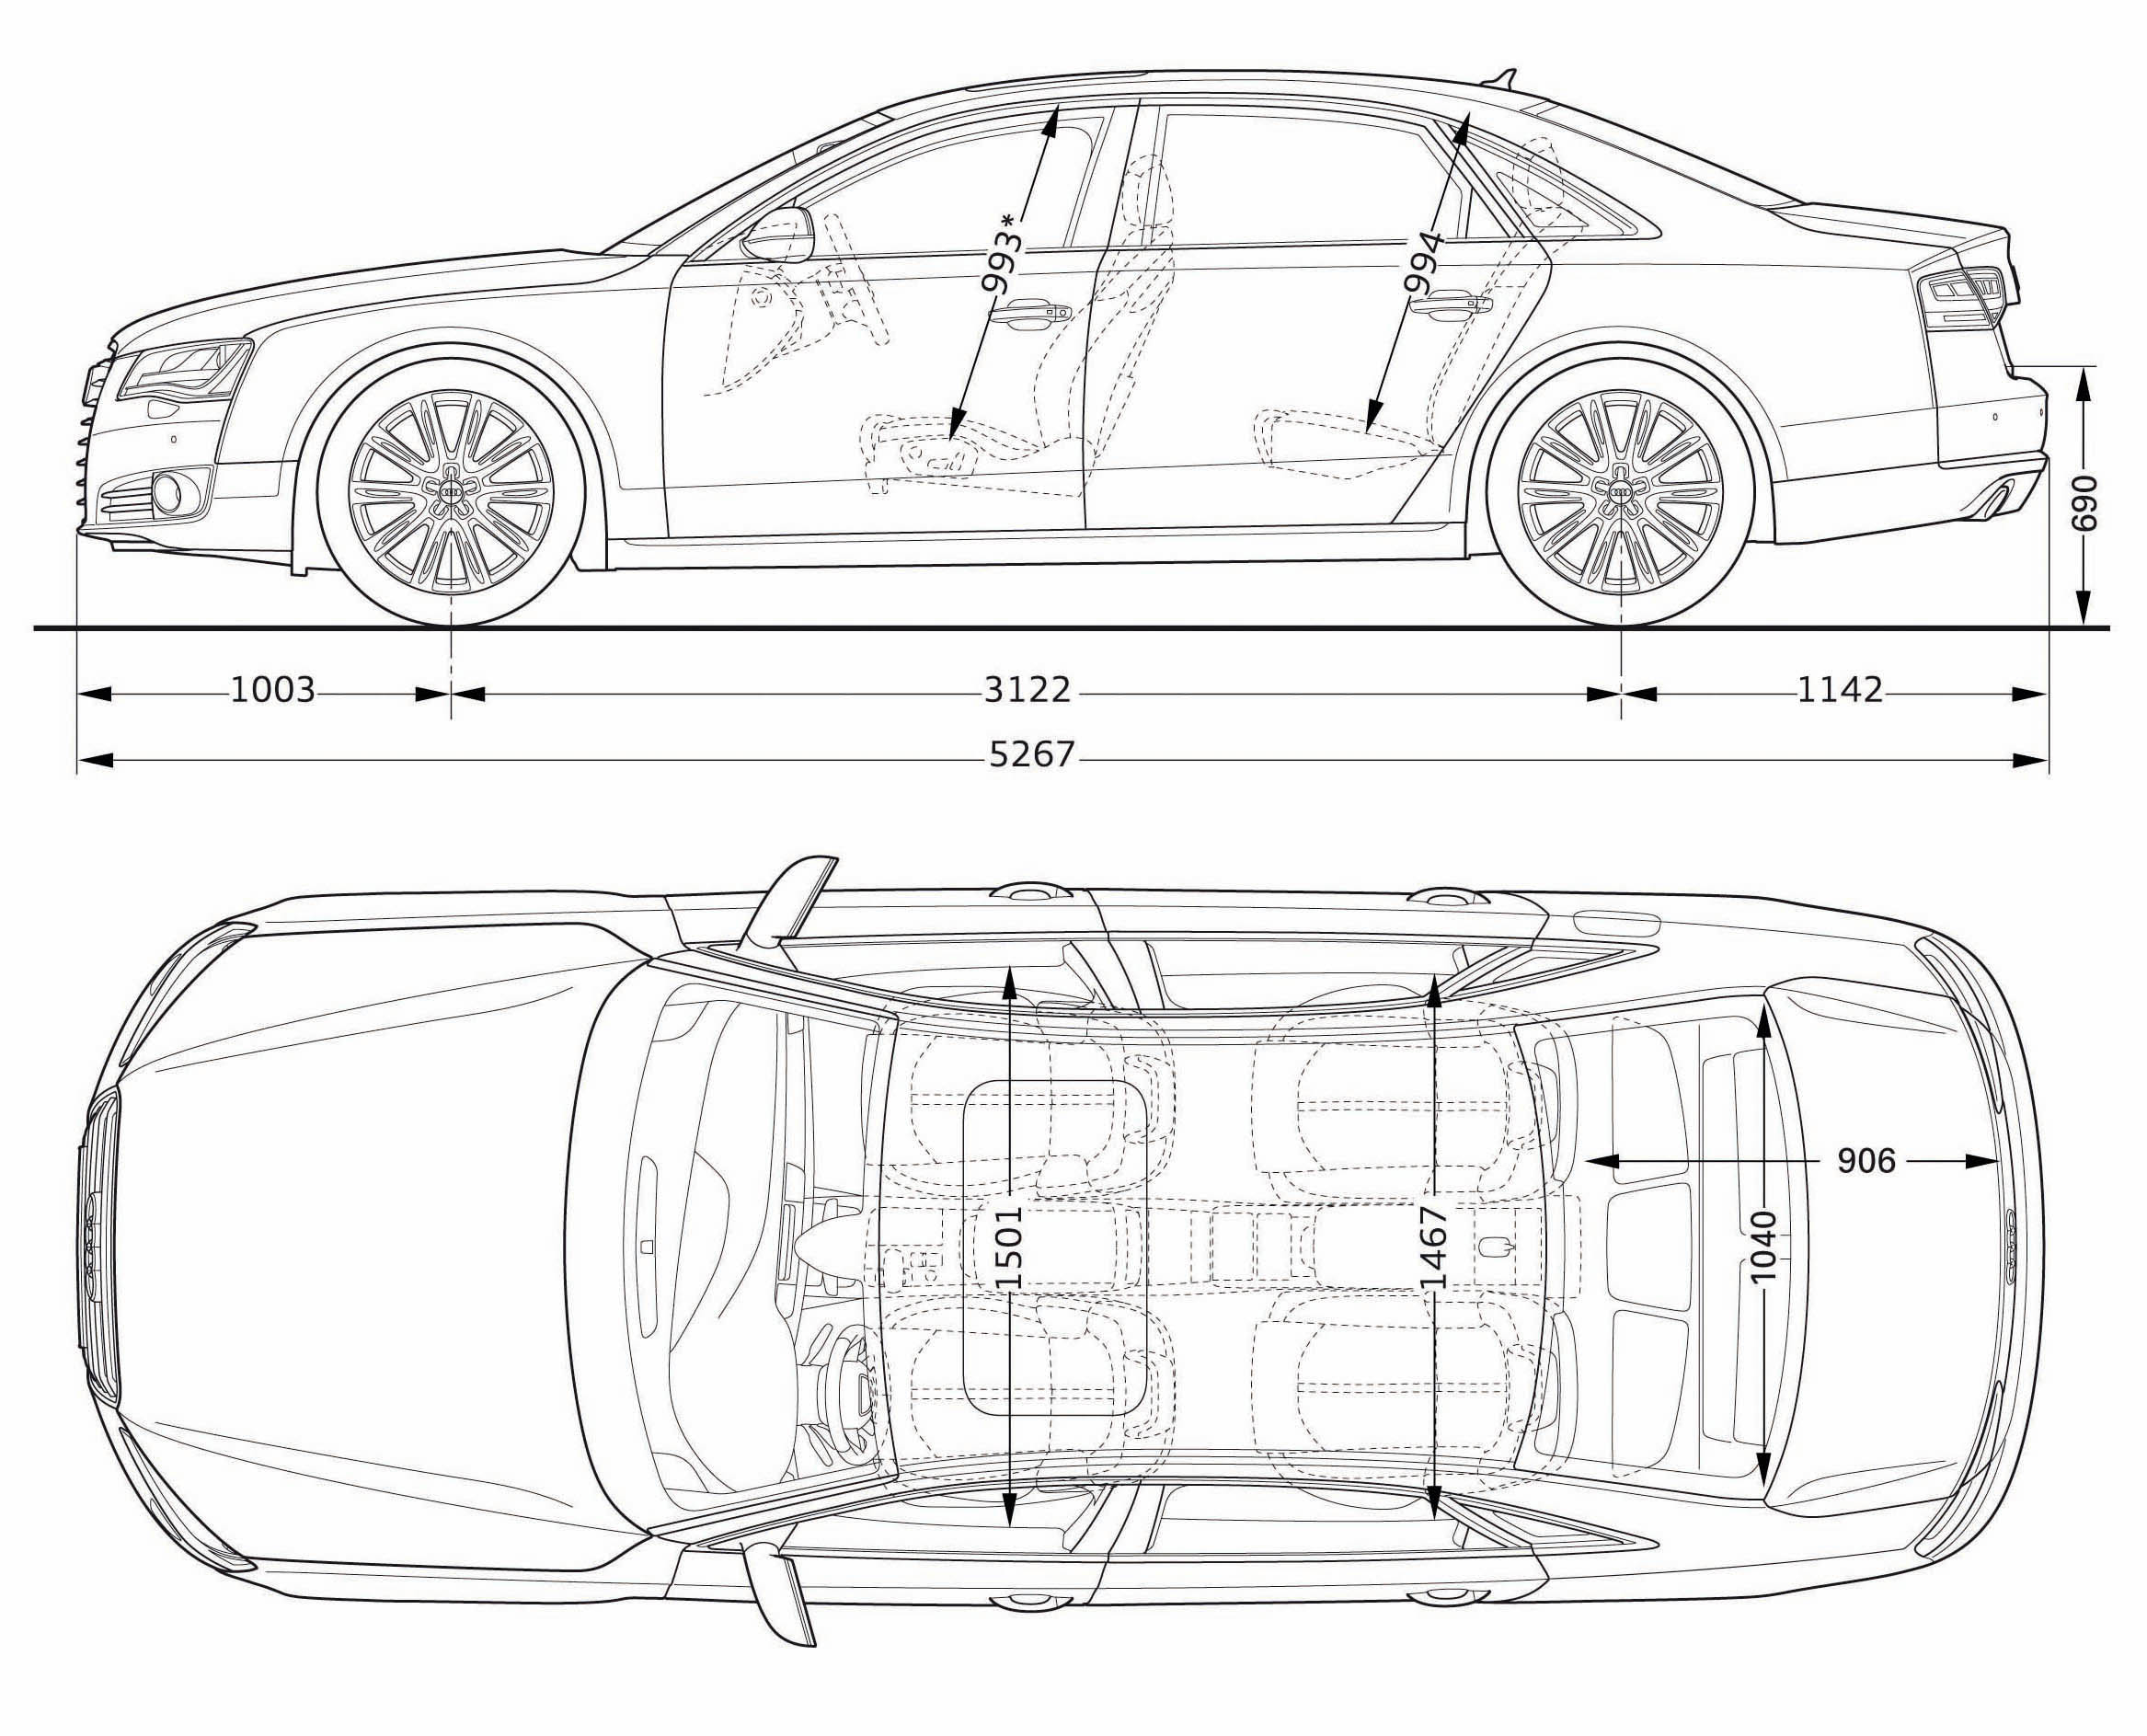 2011 Audi A8L side and top dimensions drawings.